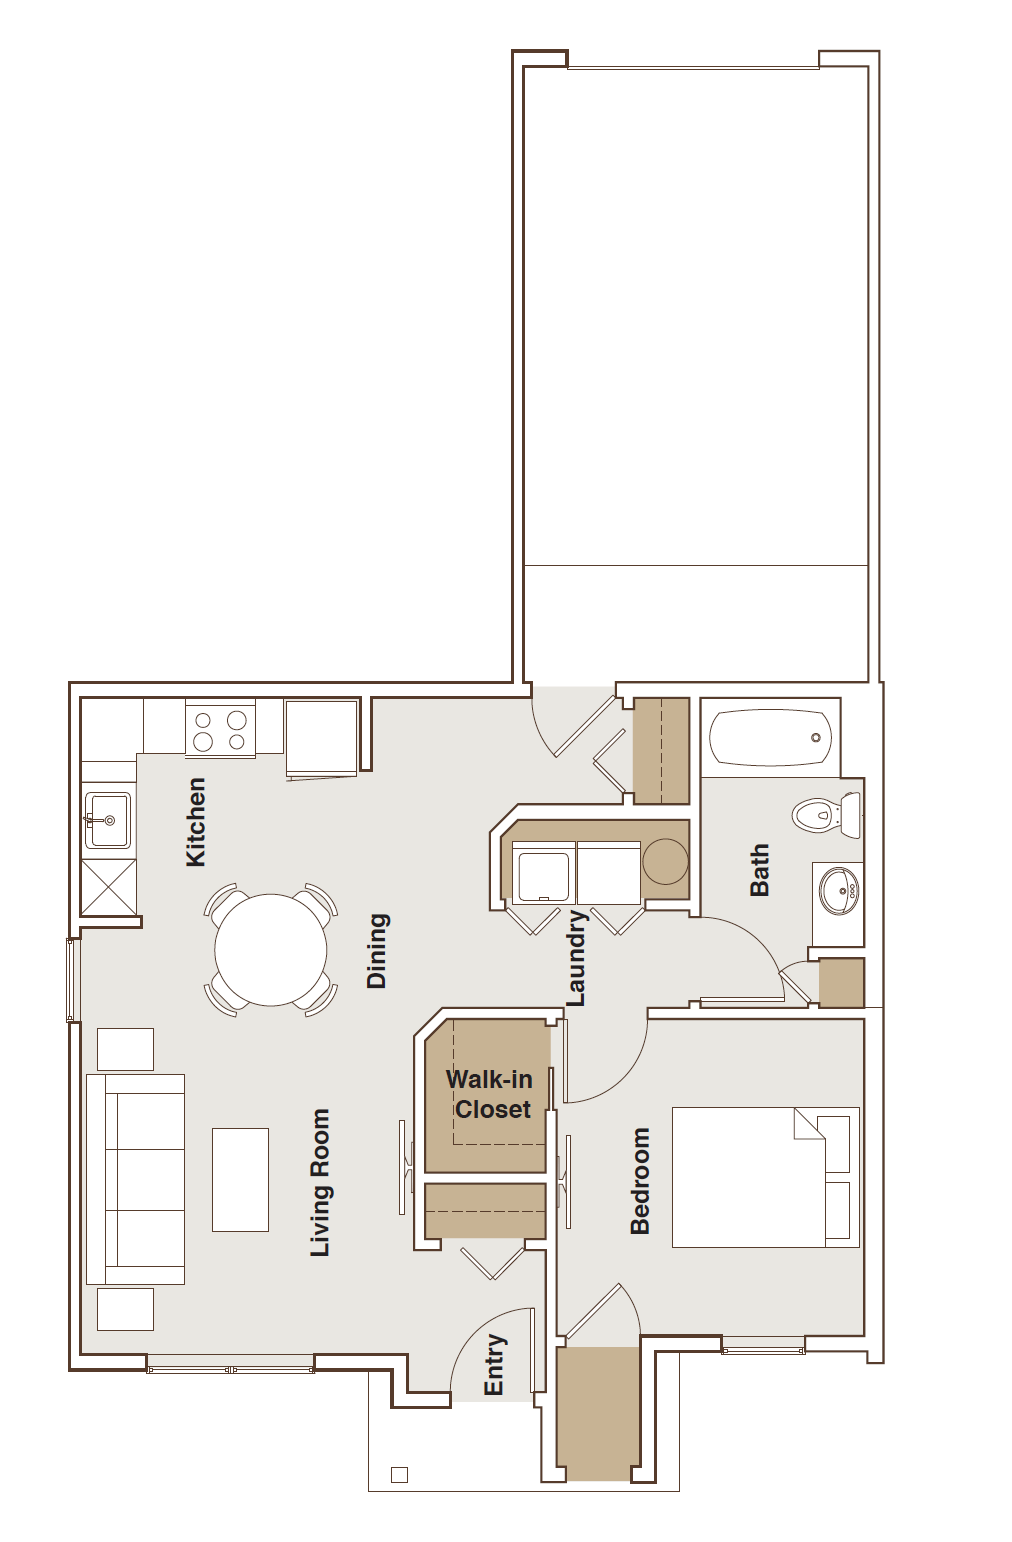 French Mill Apartments 1 Bedroom with garage Floorplan